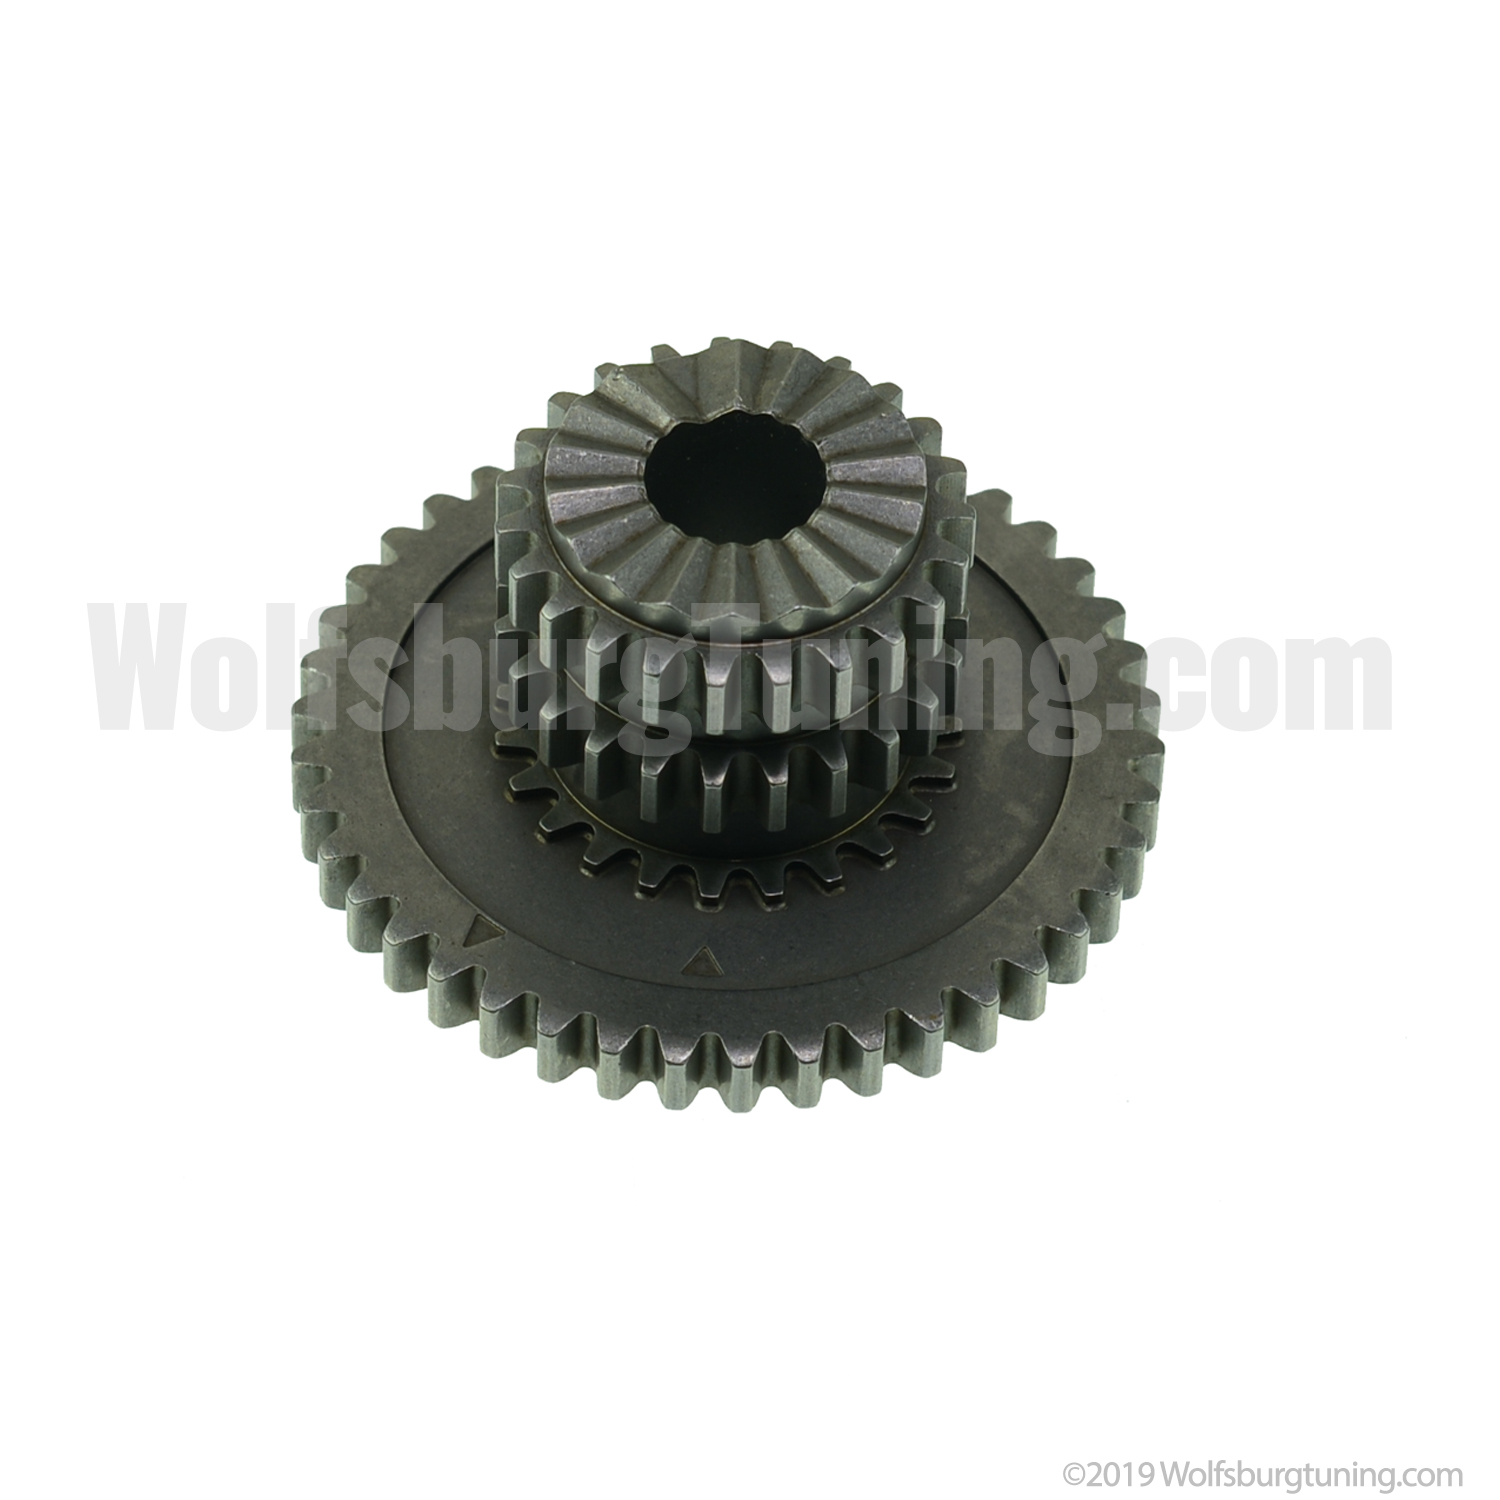 Crankshaft Gear Pulley/Sprocket